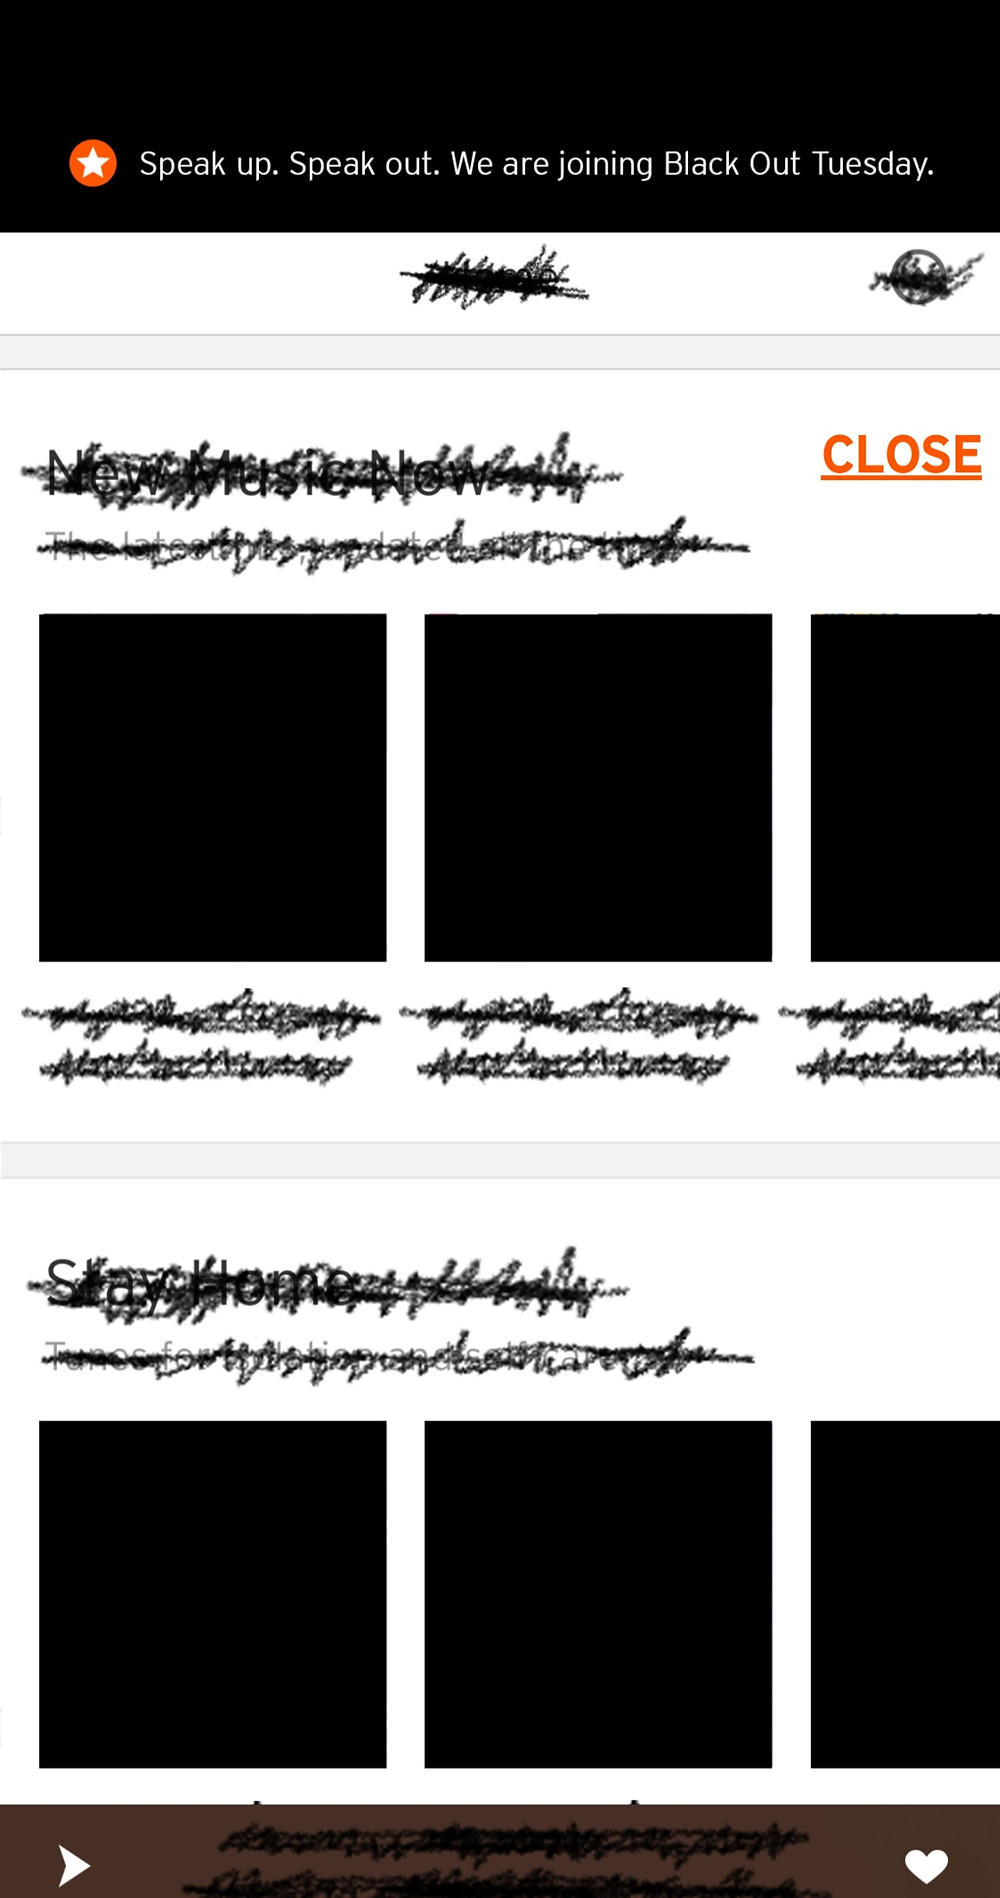 SoundCloud's app as it appeared in support of 'Blackout Tuesday' concept that is part of Black Lives Matter (Credit: SoundCloud).